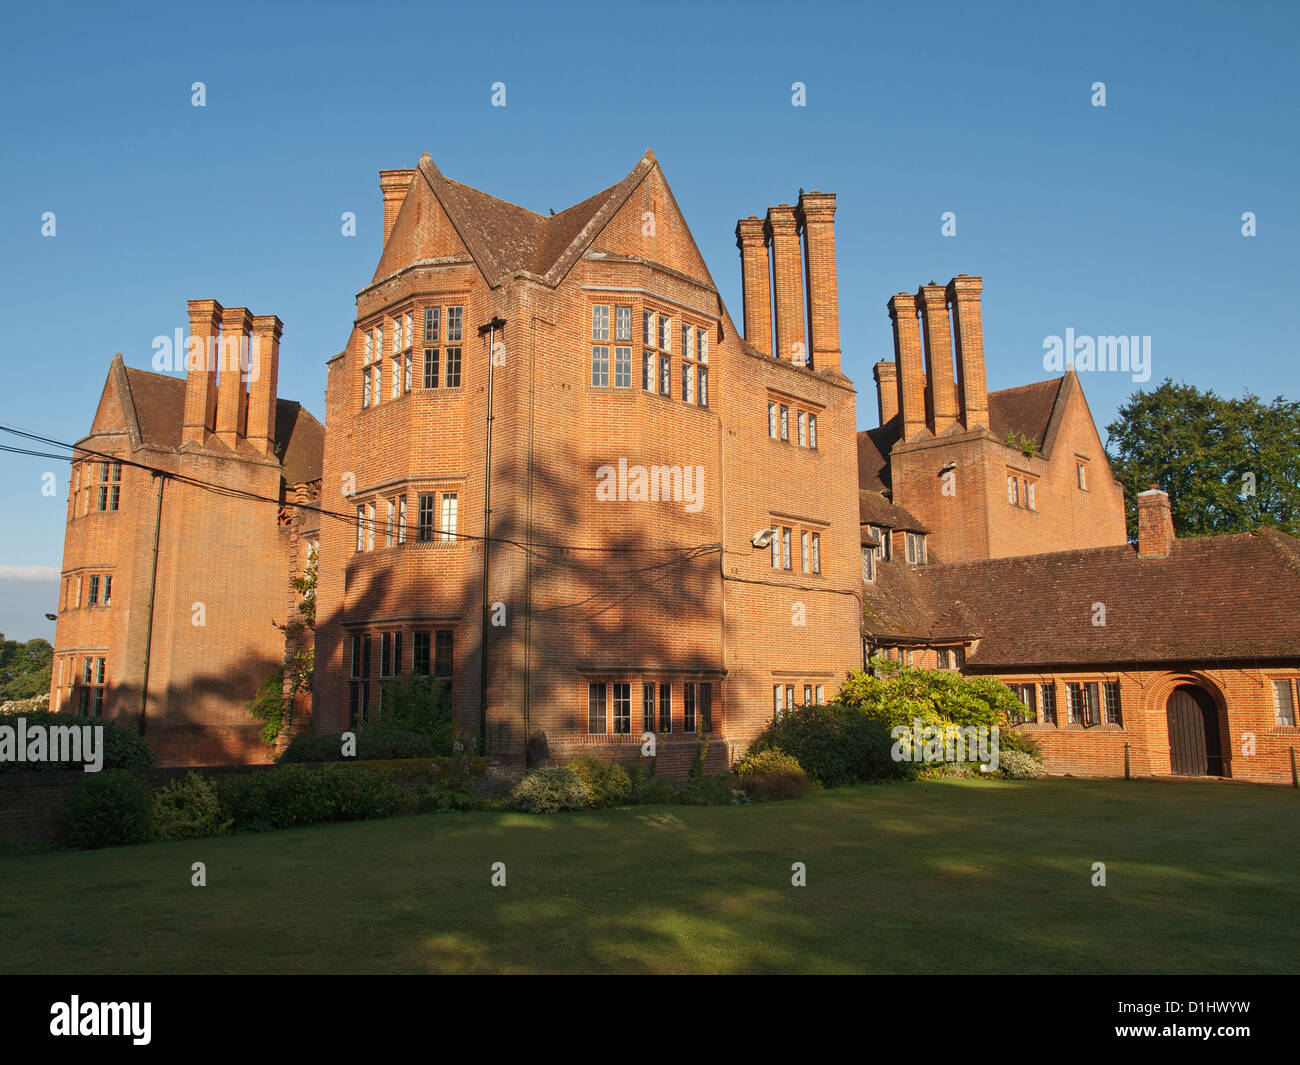 Devere Venues New Place Hotel Shirrell Heath Southampton Hampshire UK - Stock Image